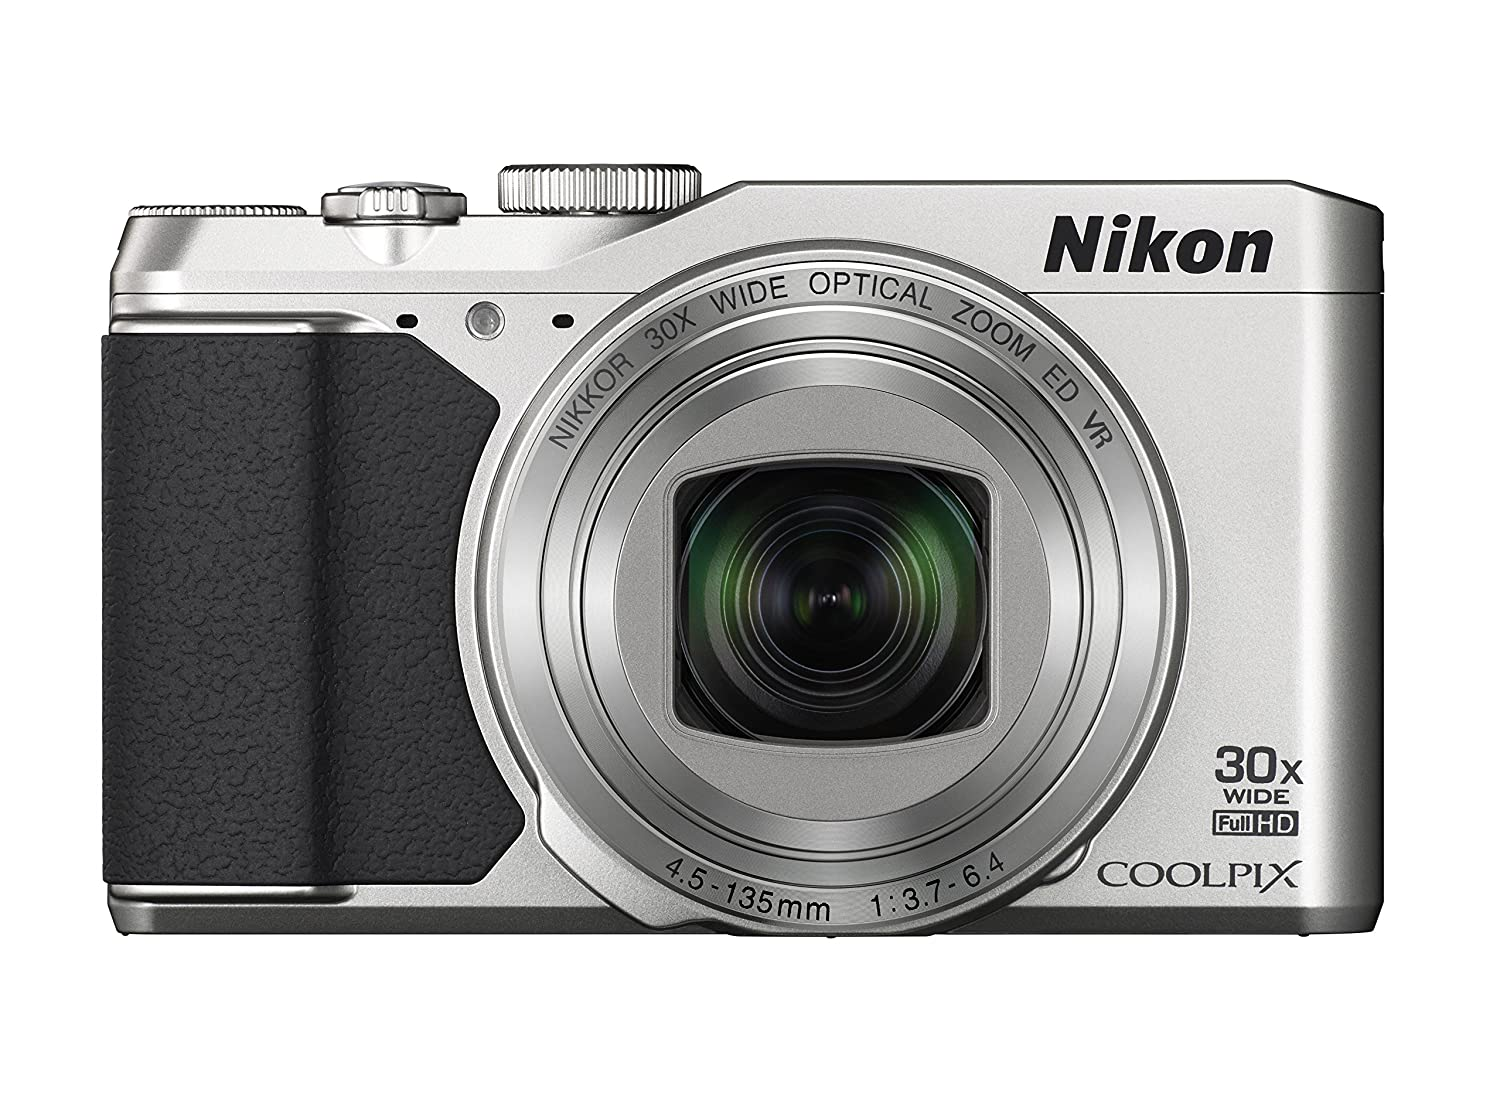 c9a4e42729c Amazon.com   Nikon COOLPIX S9900 Digital Camera with 30x Optical Zoom and  Built-In Wi-Fi (Silver)   Camera   Photo